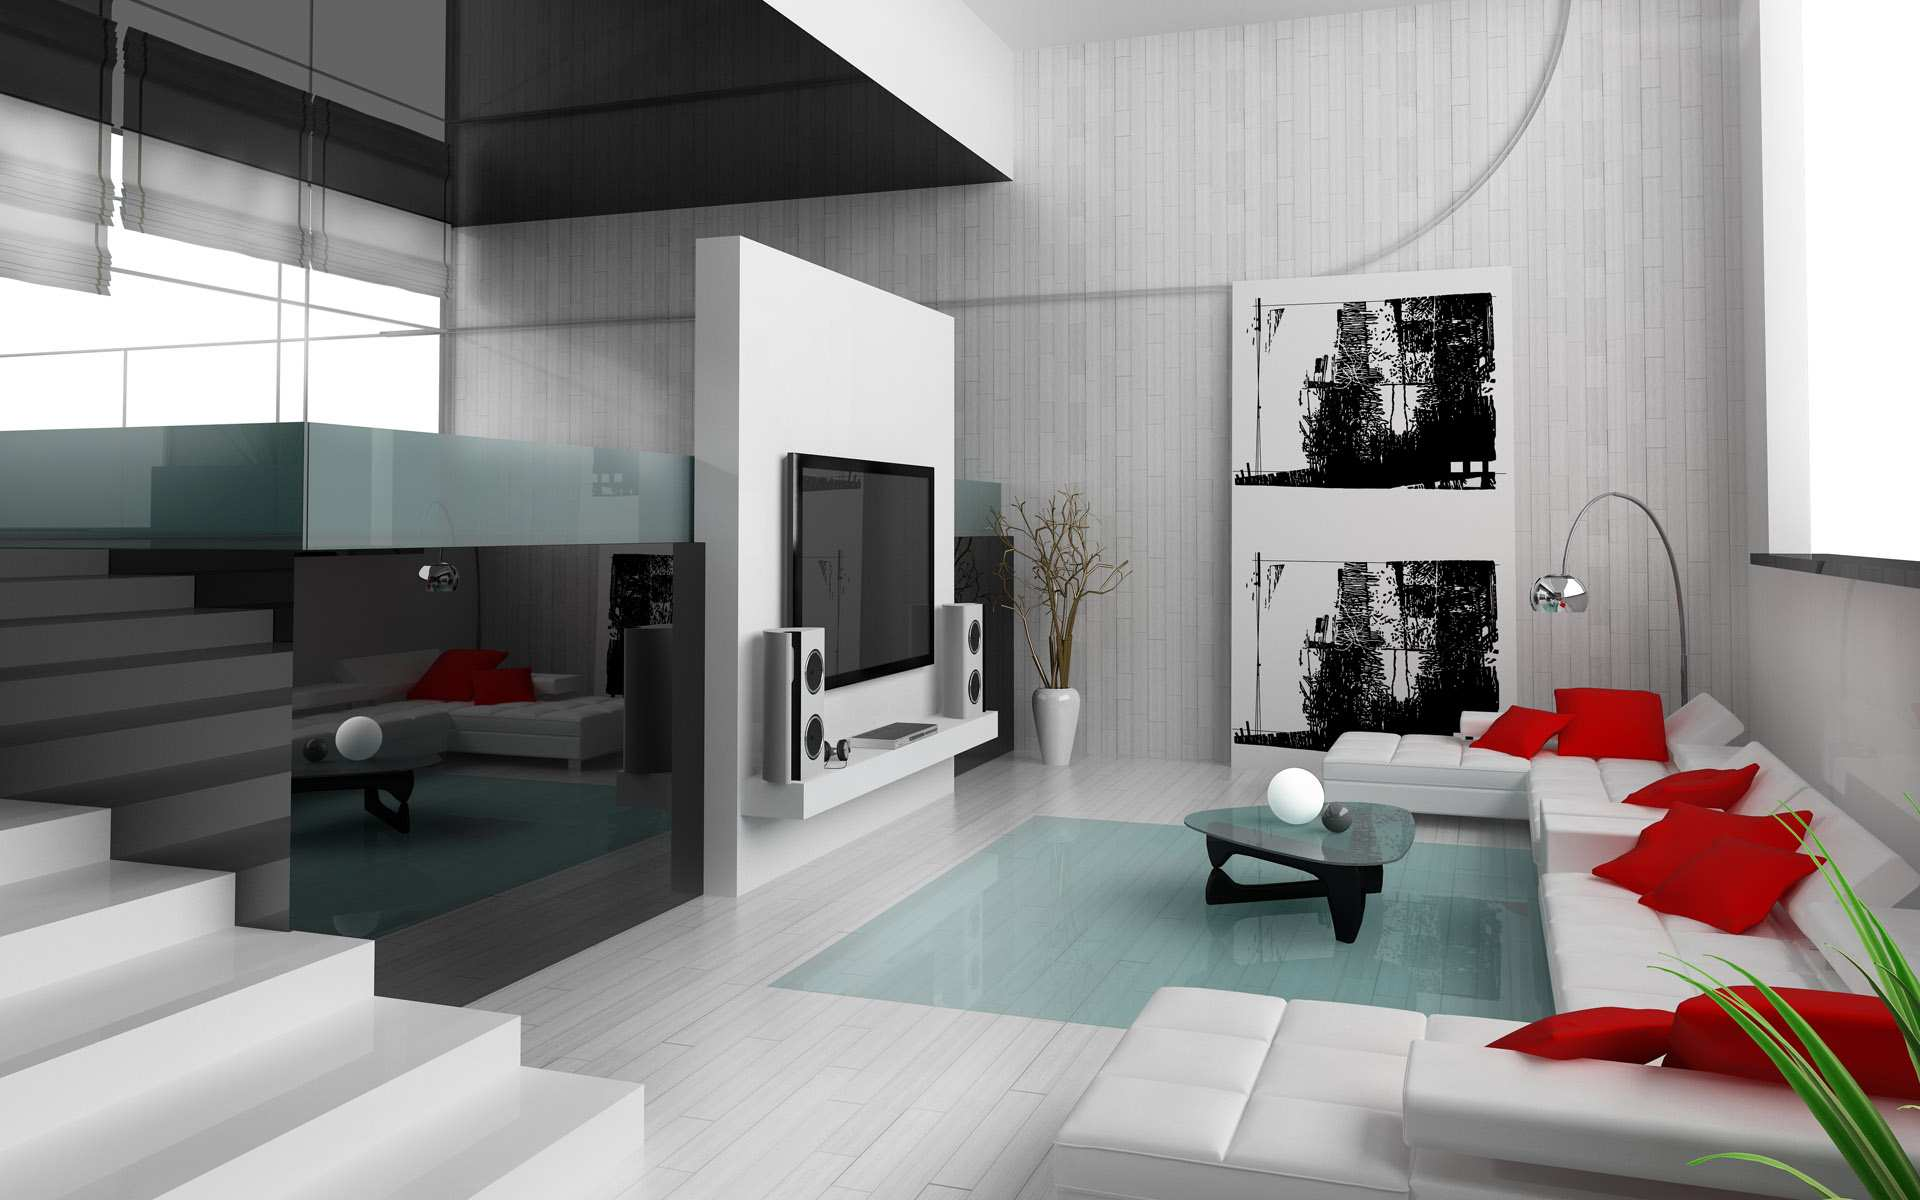 23 modern interior design ideas for the perfect home for Modern interior home designs ideas